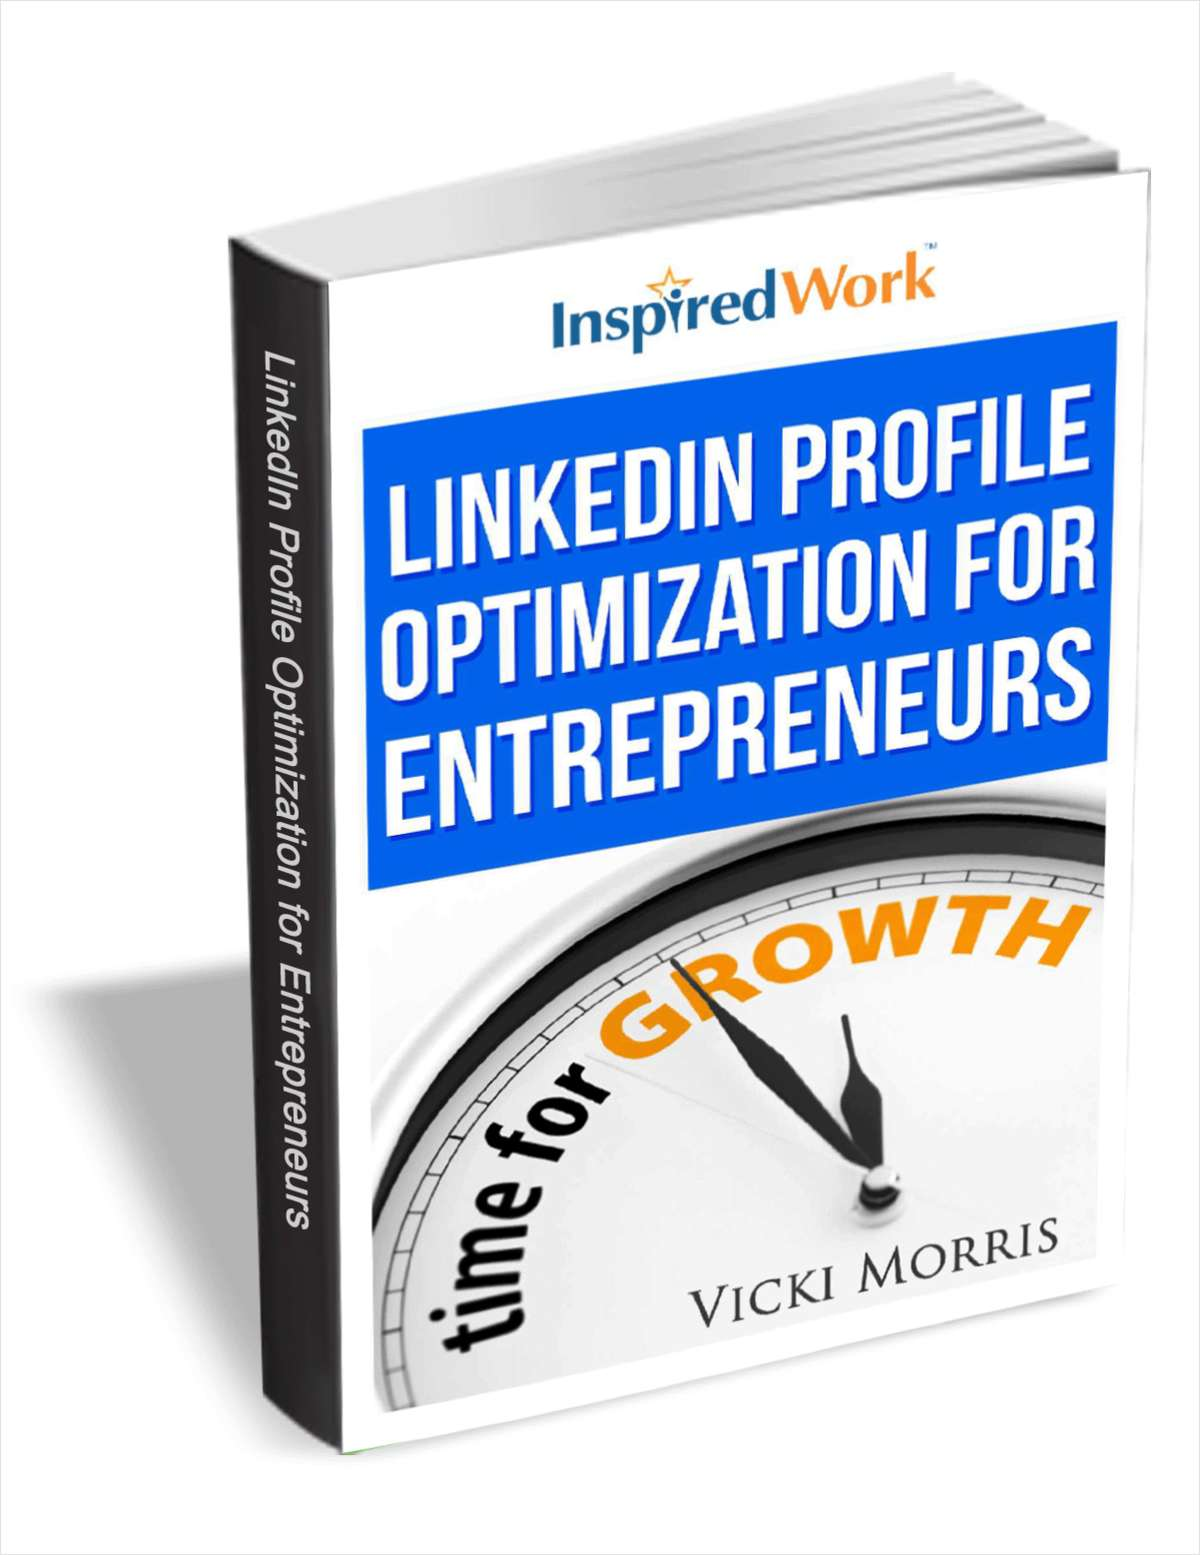 LinkedIn Profile Optimization for Entrepreneurs